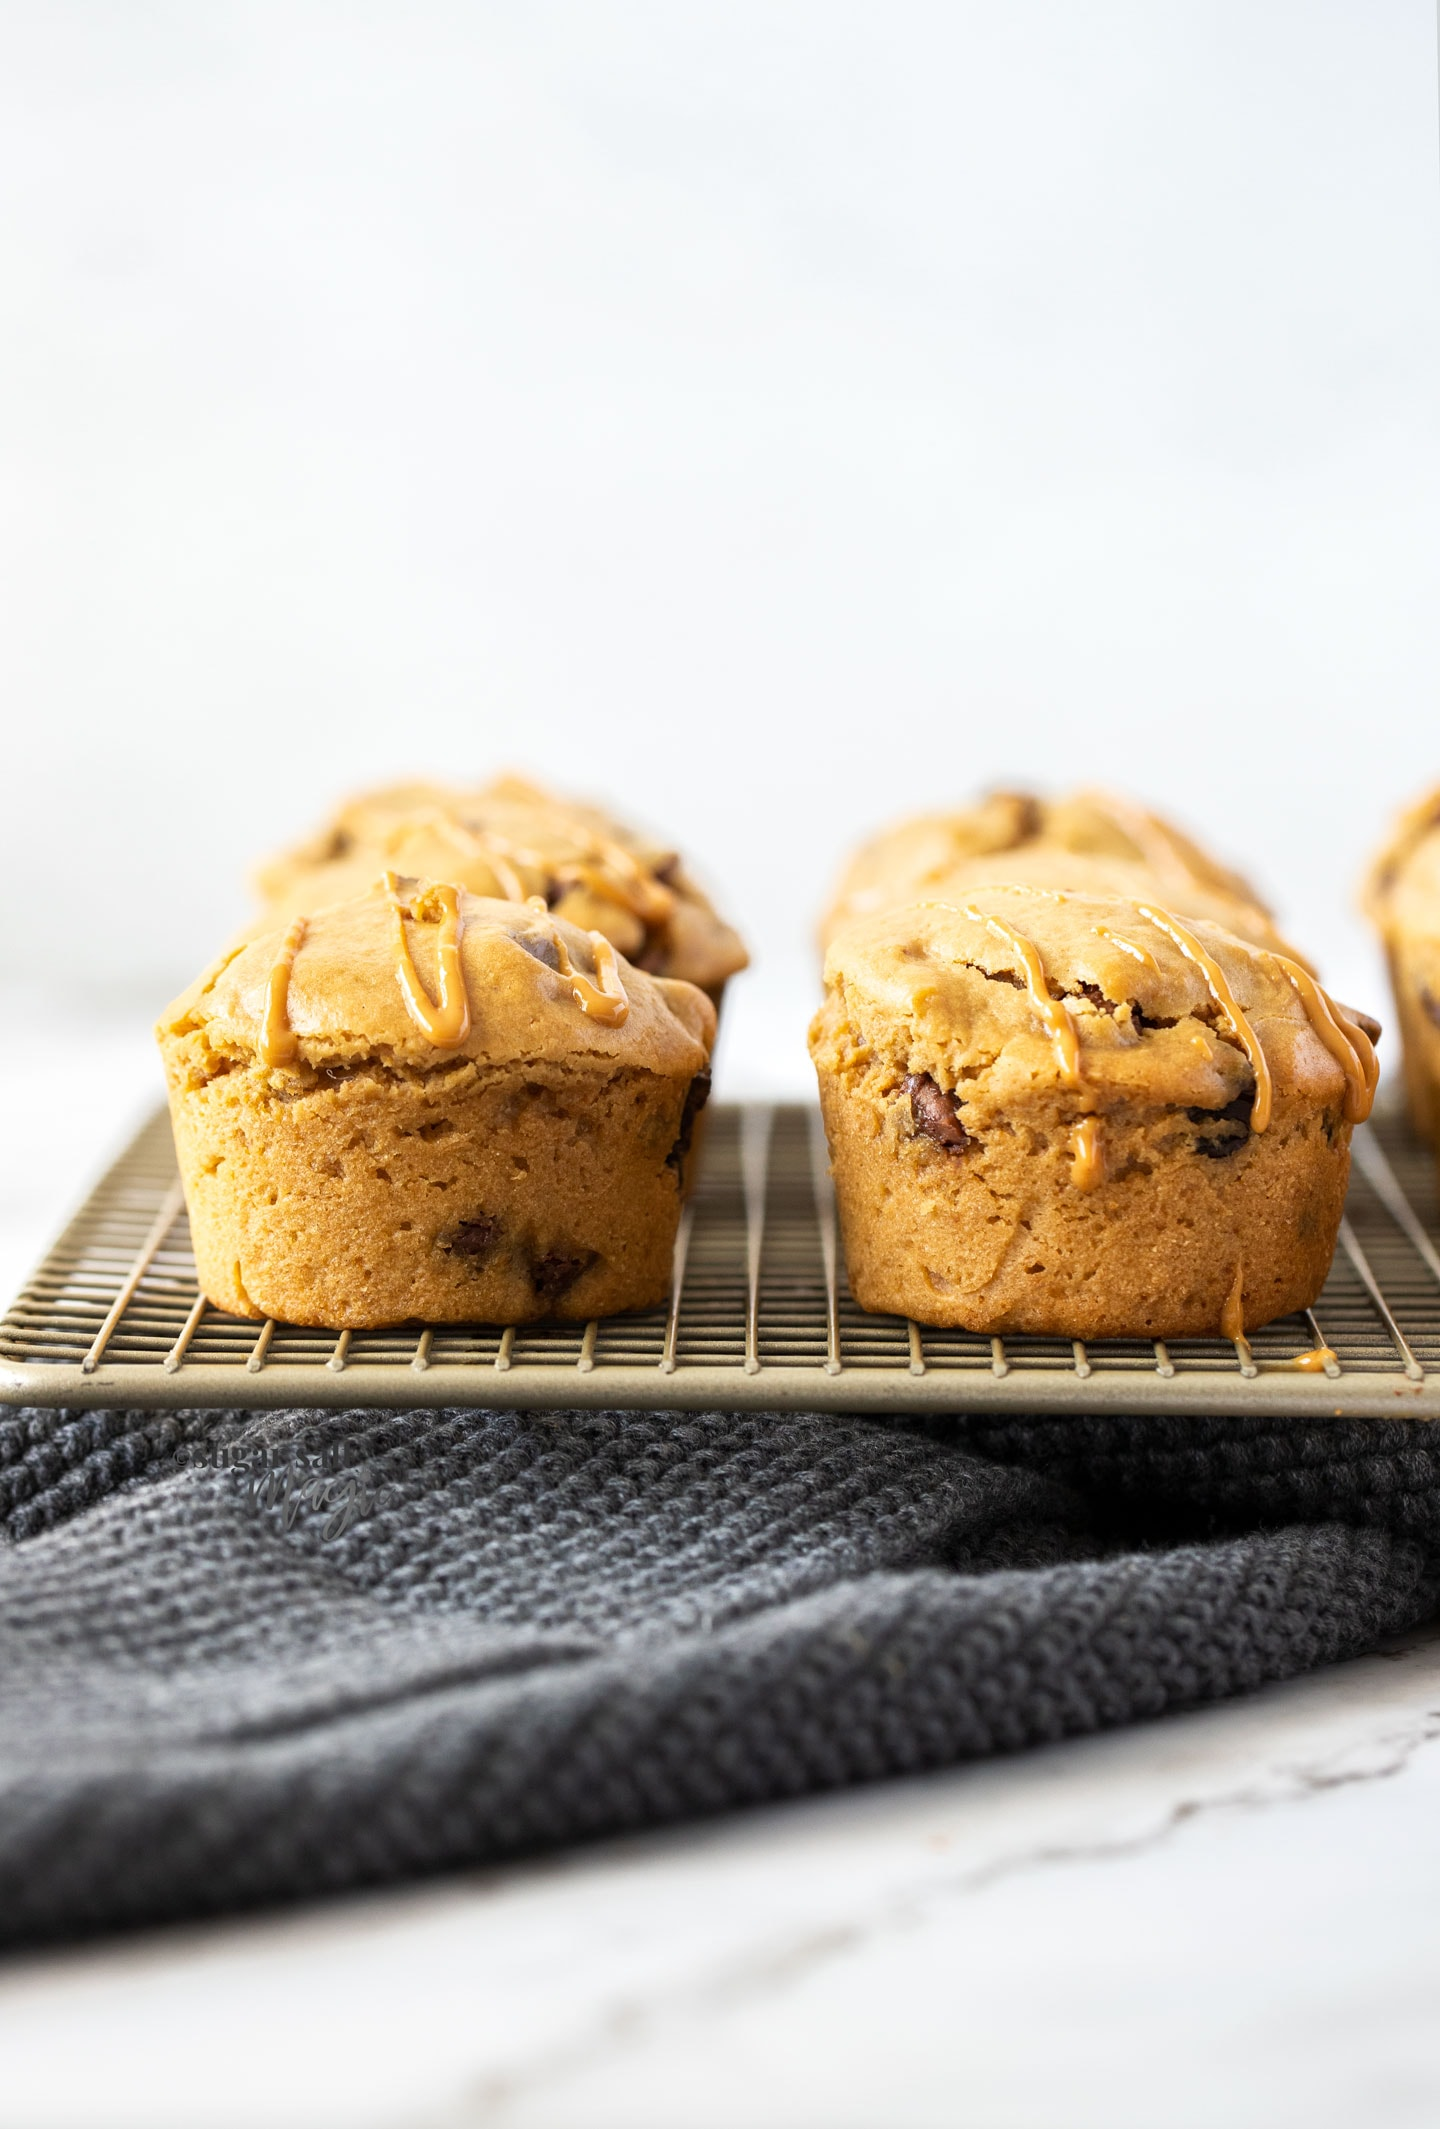 Muffins stacked side by side on a gold wire rack